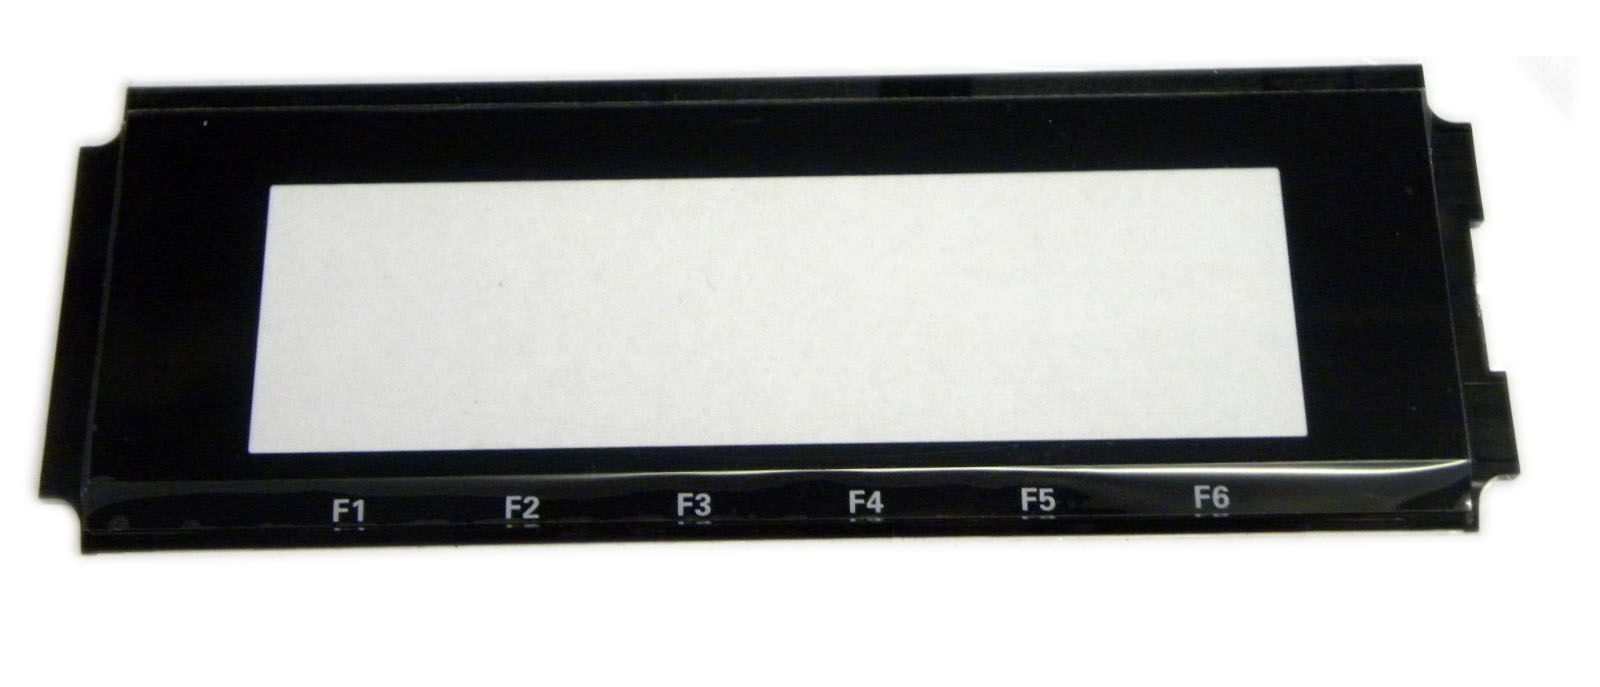 akai-window-lcd-for-mpc2500